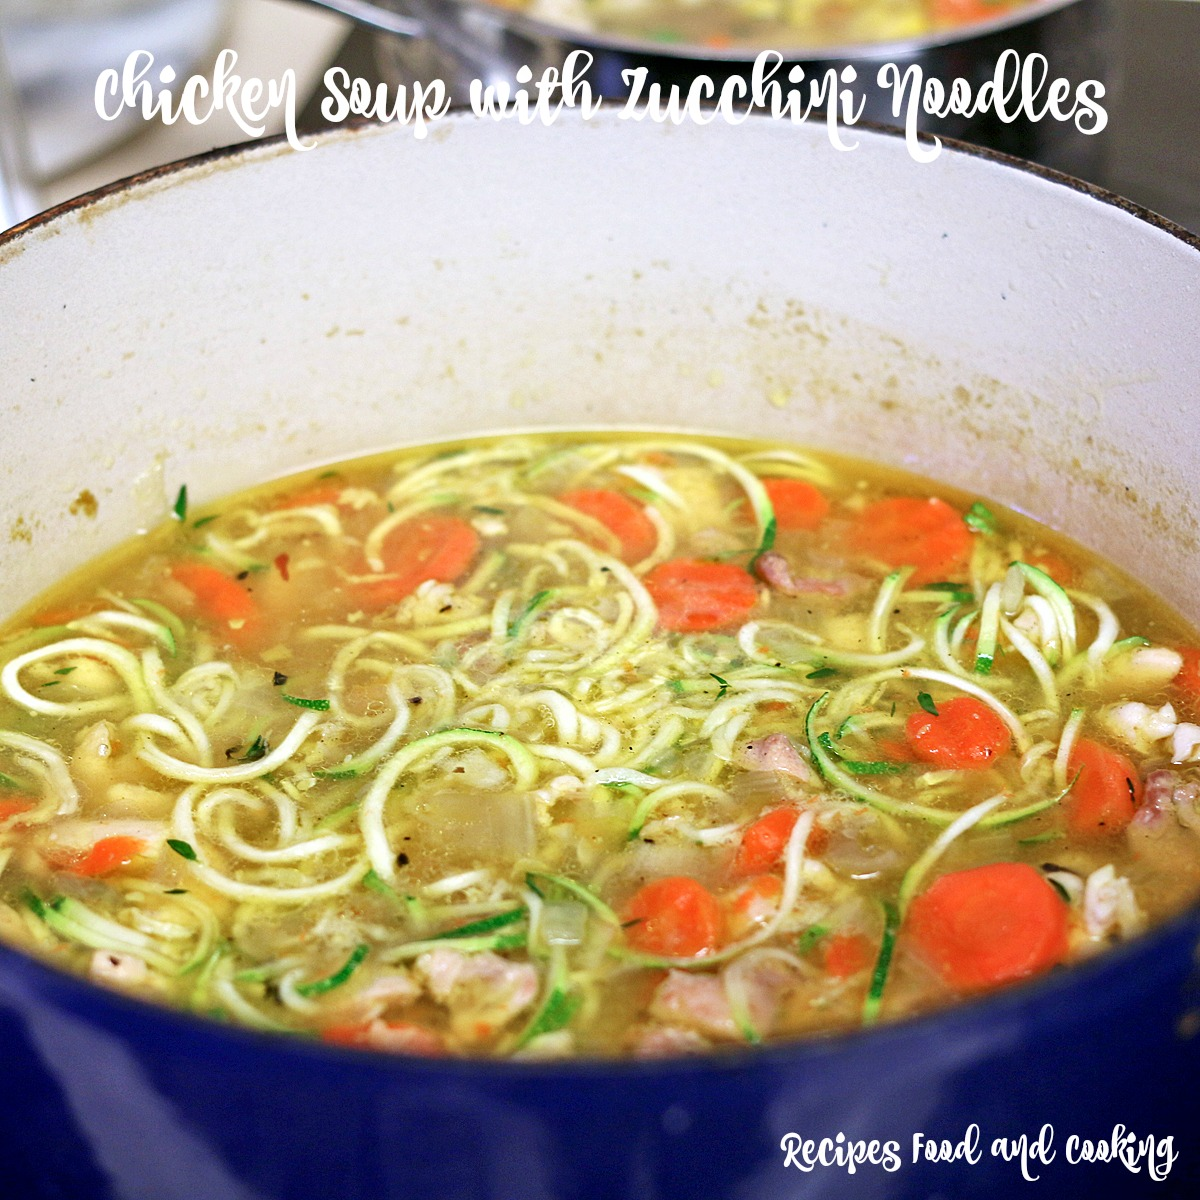 Chicken Soup with Zucchini Noodles